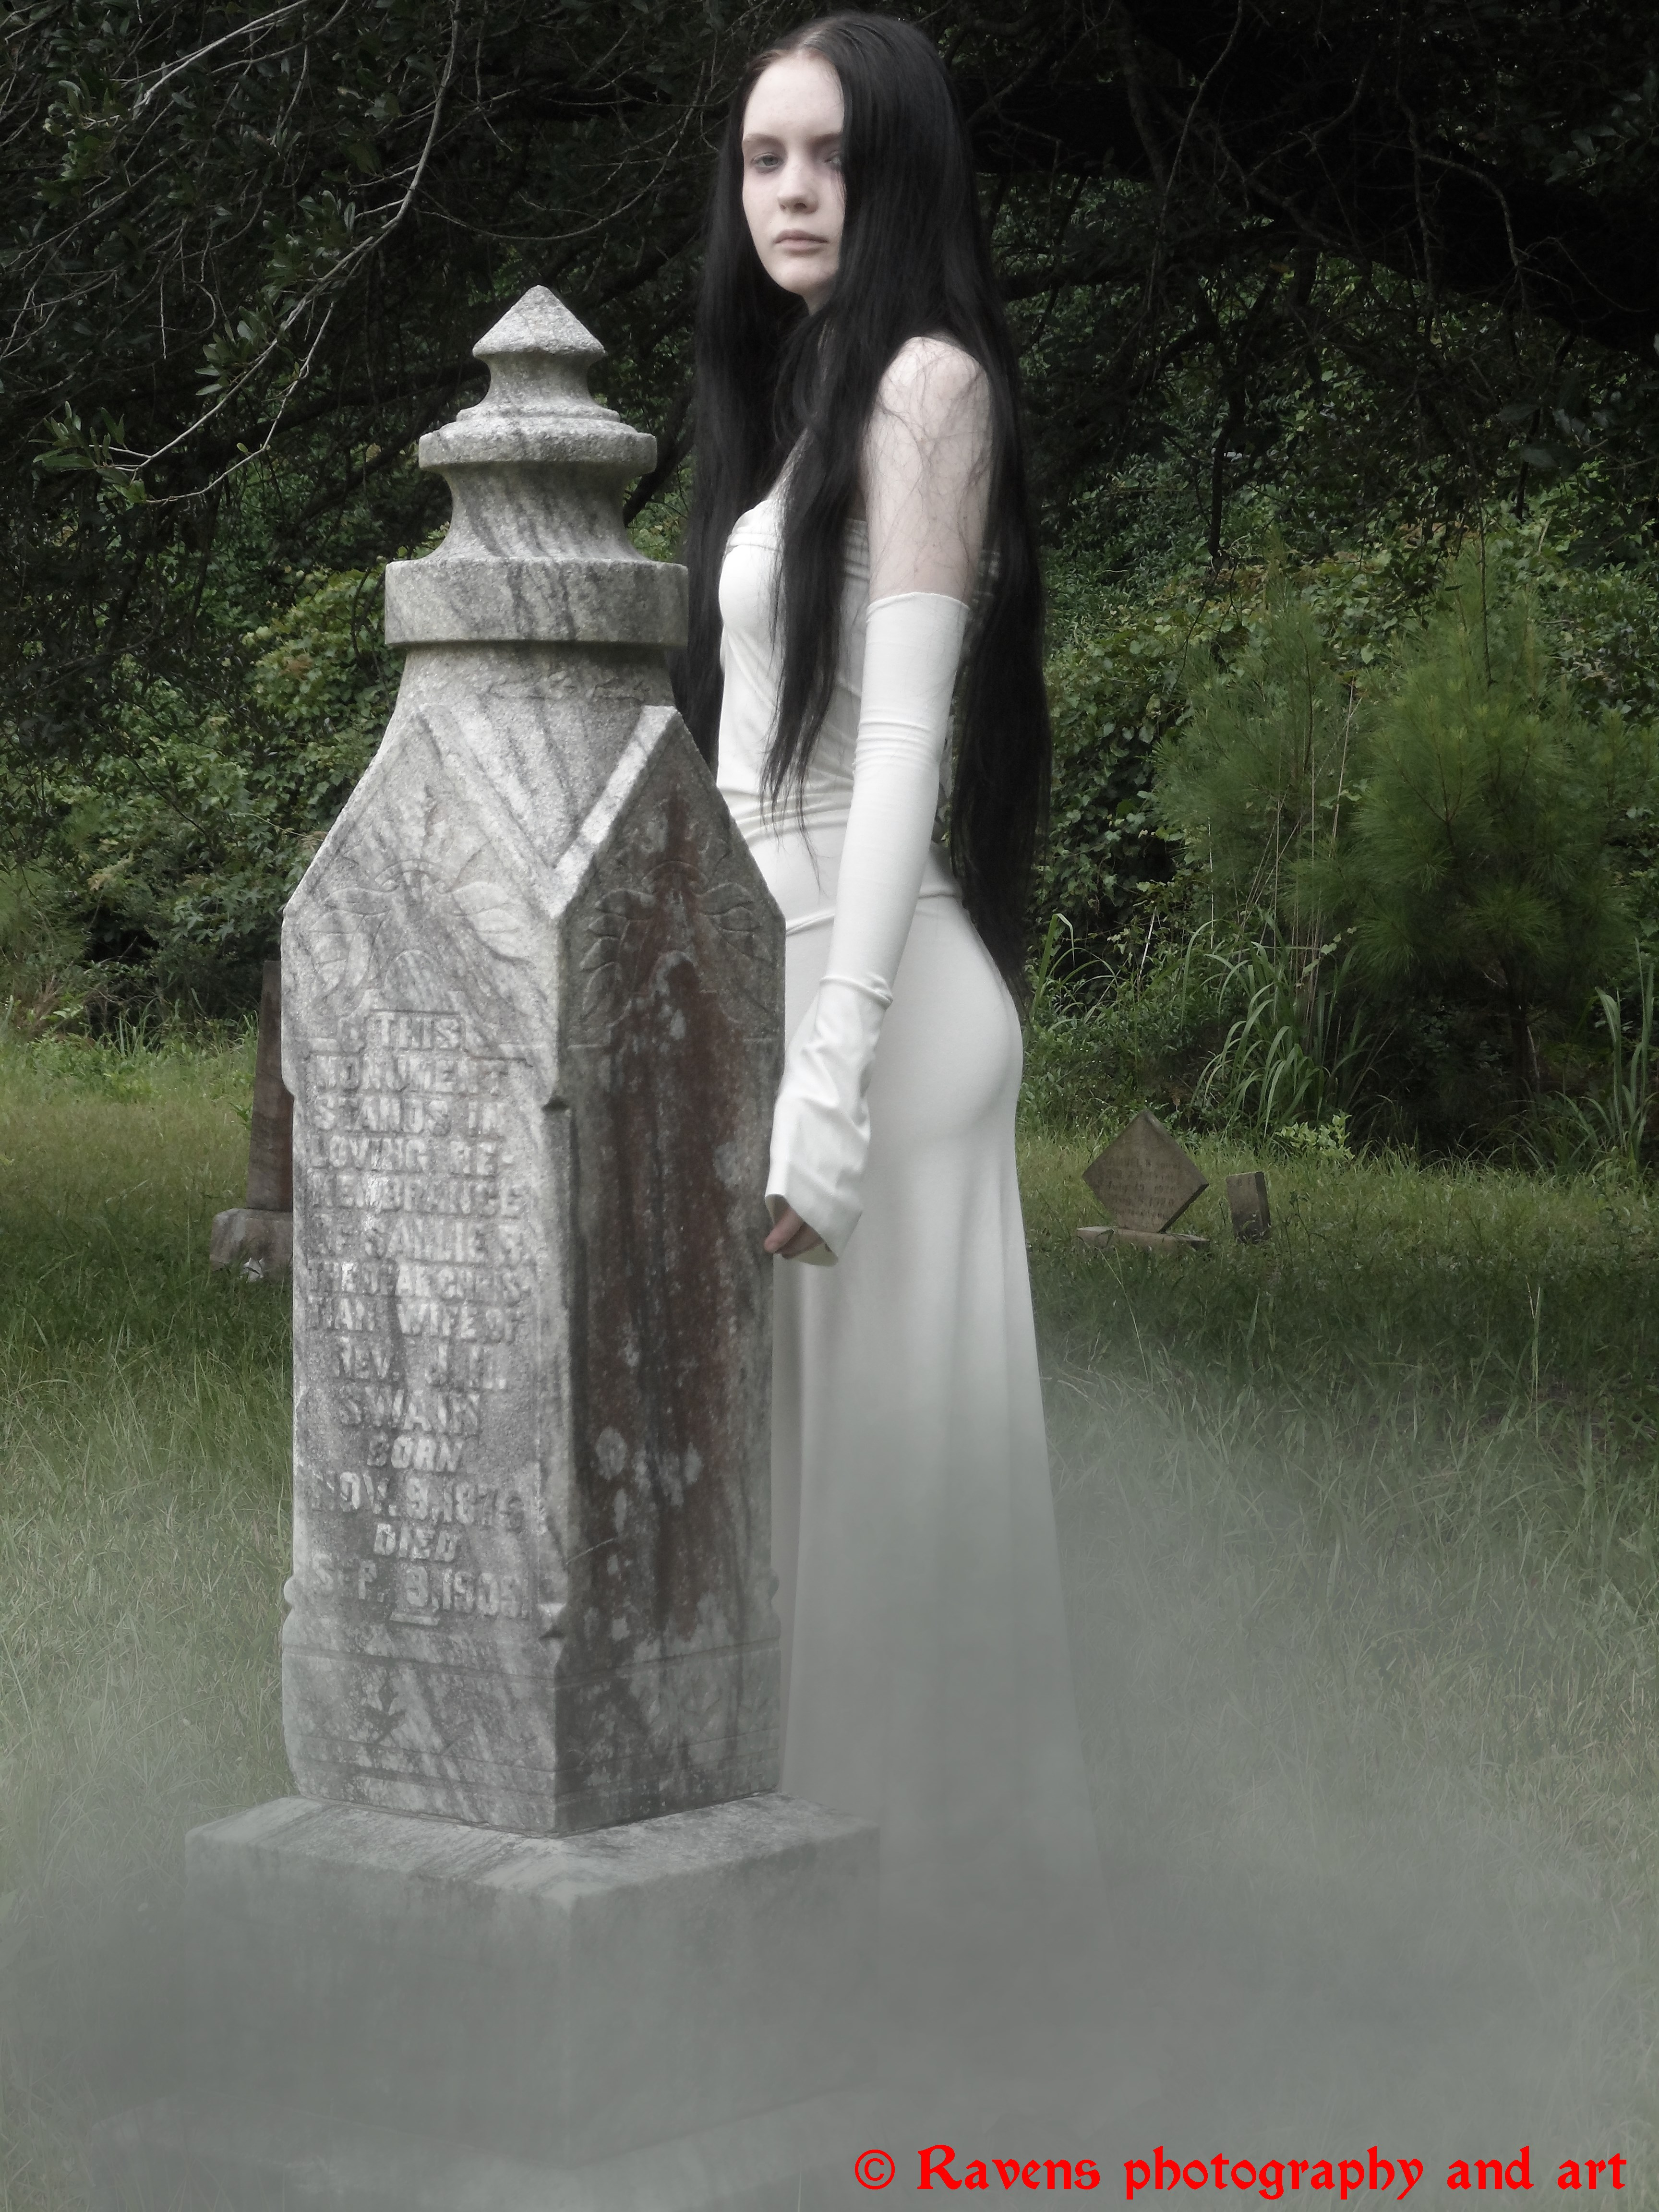 Her Ghost in the fog 2, first edit by GothicRavenMidnight